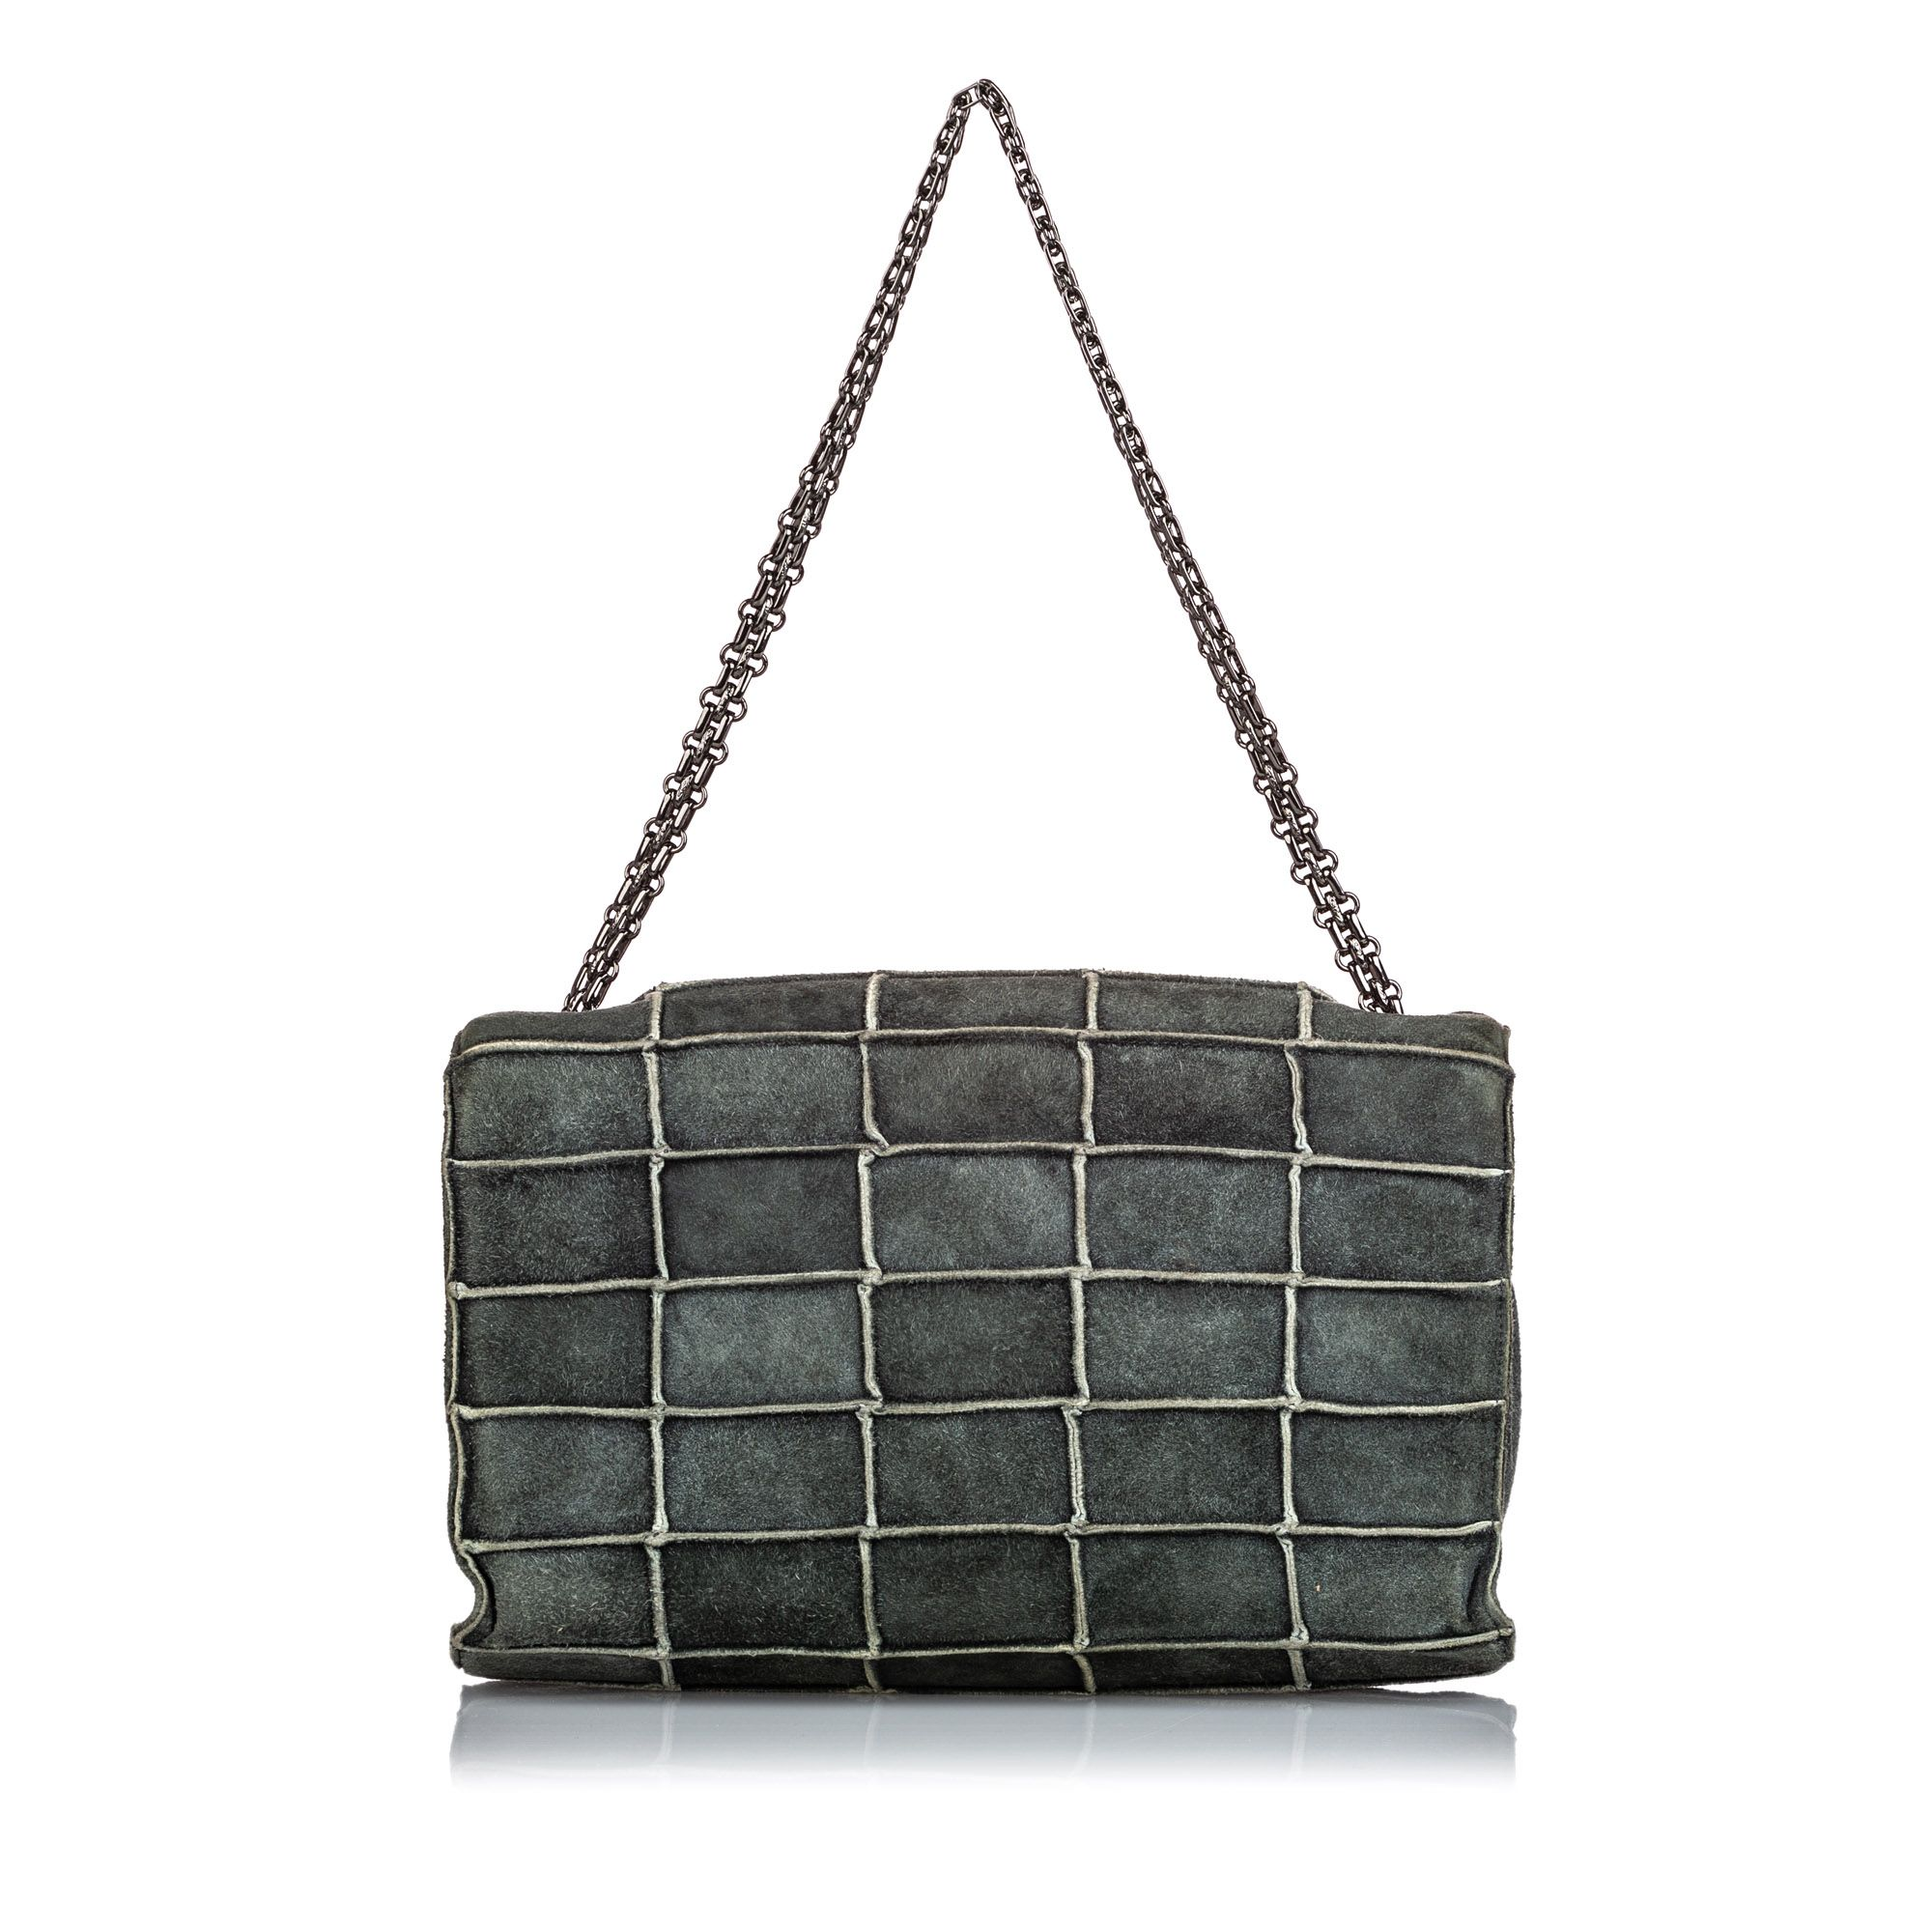 Vintage Chanel Reissue 225 Patchwork Flap Bag Gray